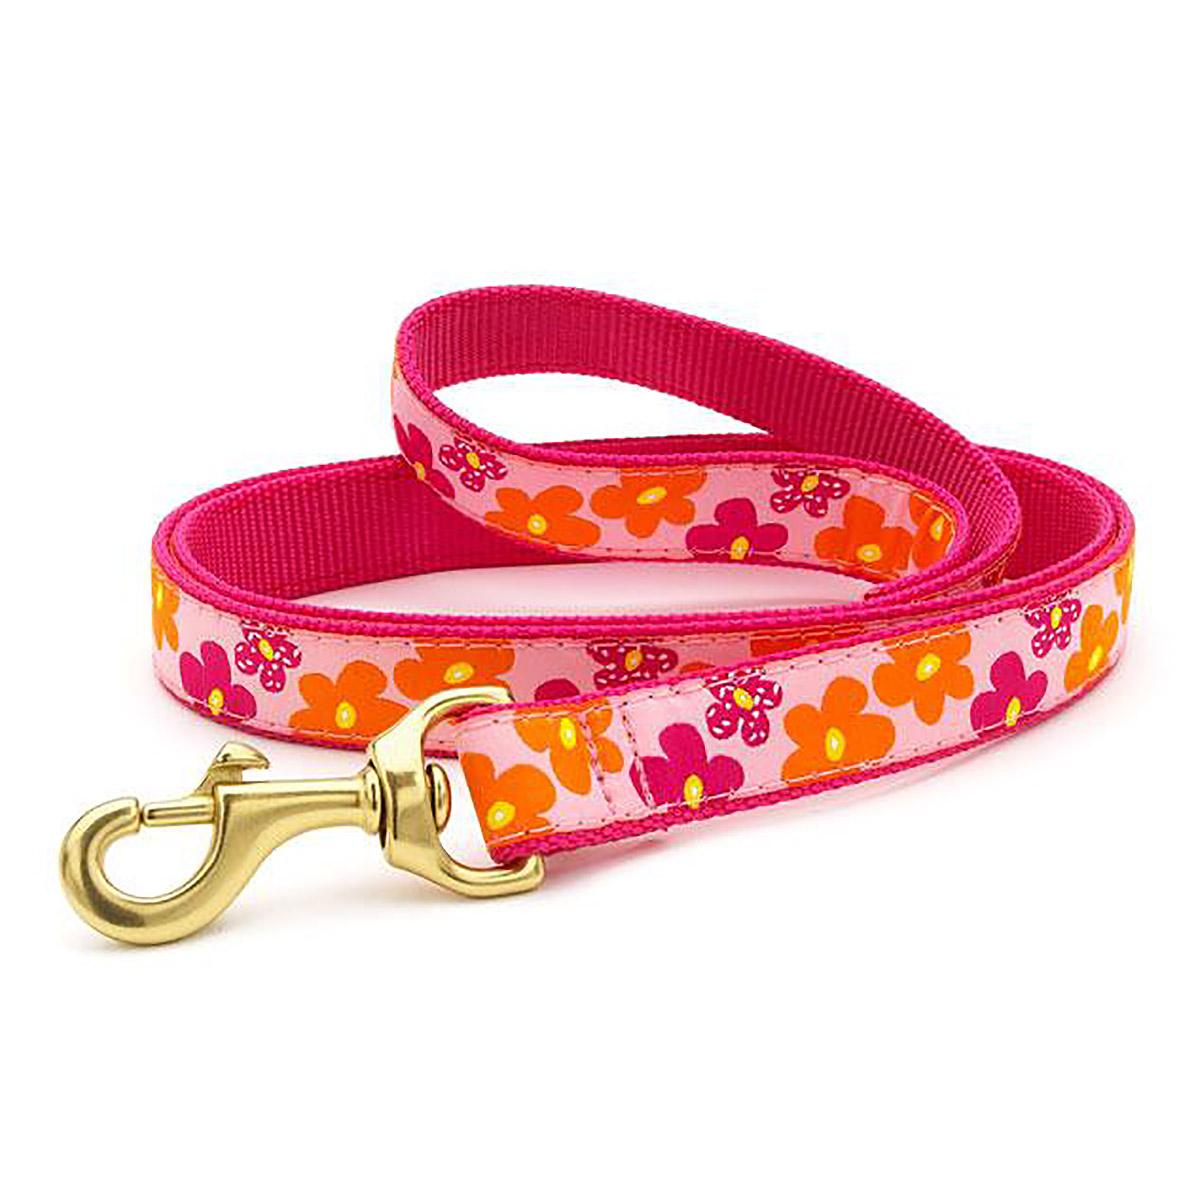 Flower Power Dog Leash by Up Country